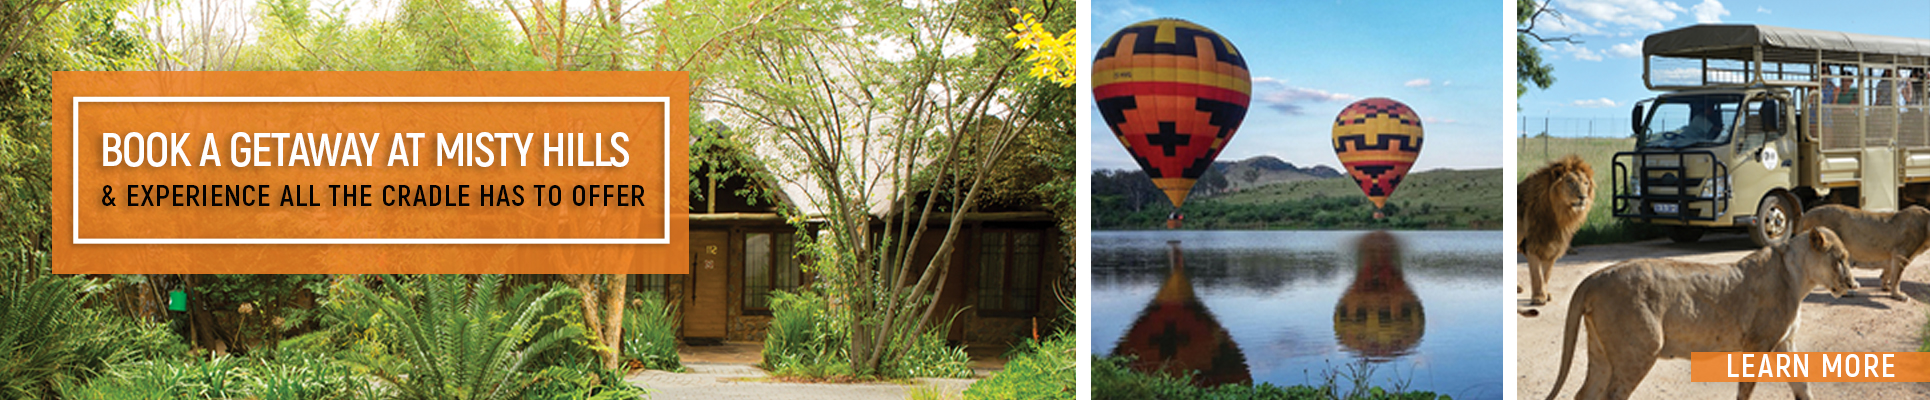 Misty Hills Country Hotel Cradle of Humankind Experience including Maropeng, Lion Park Safari Tours